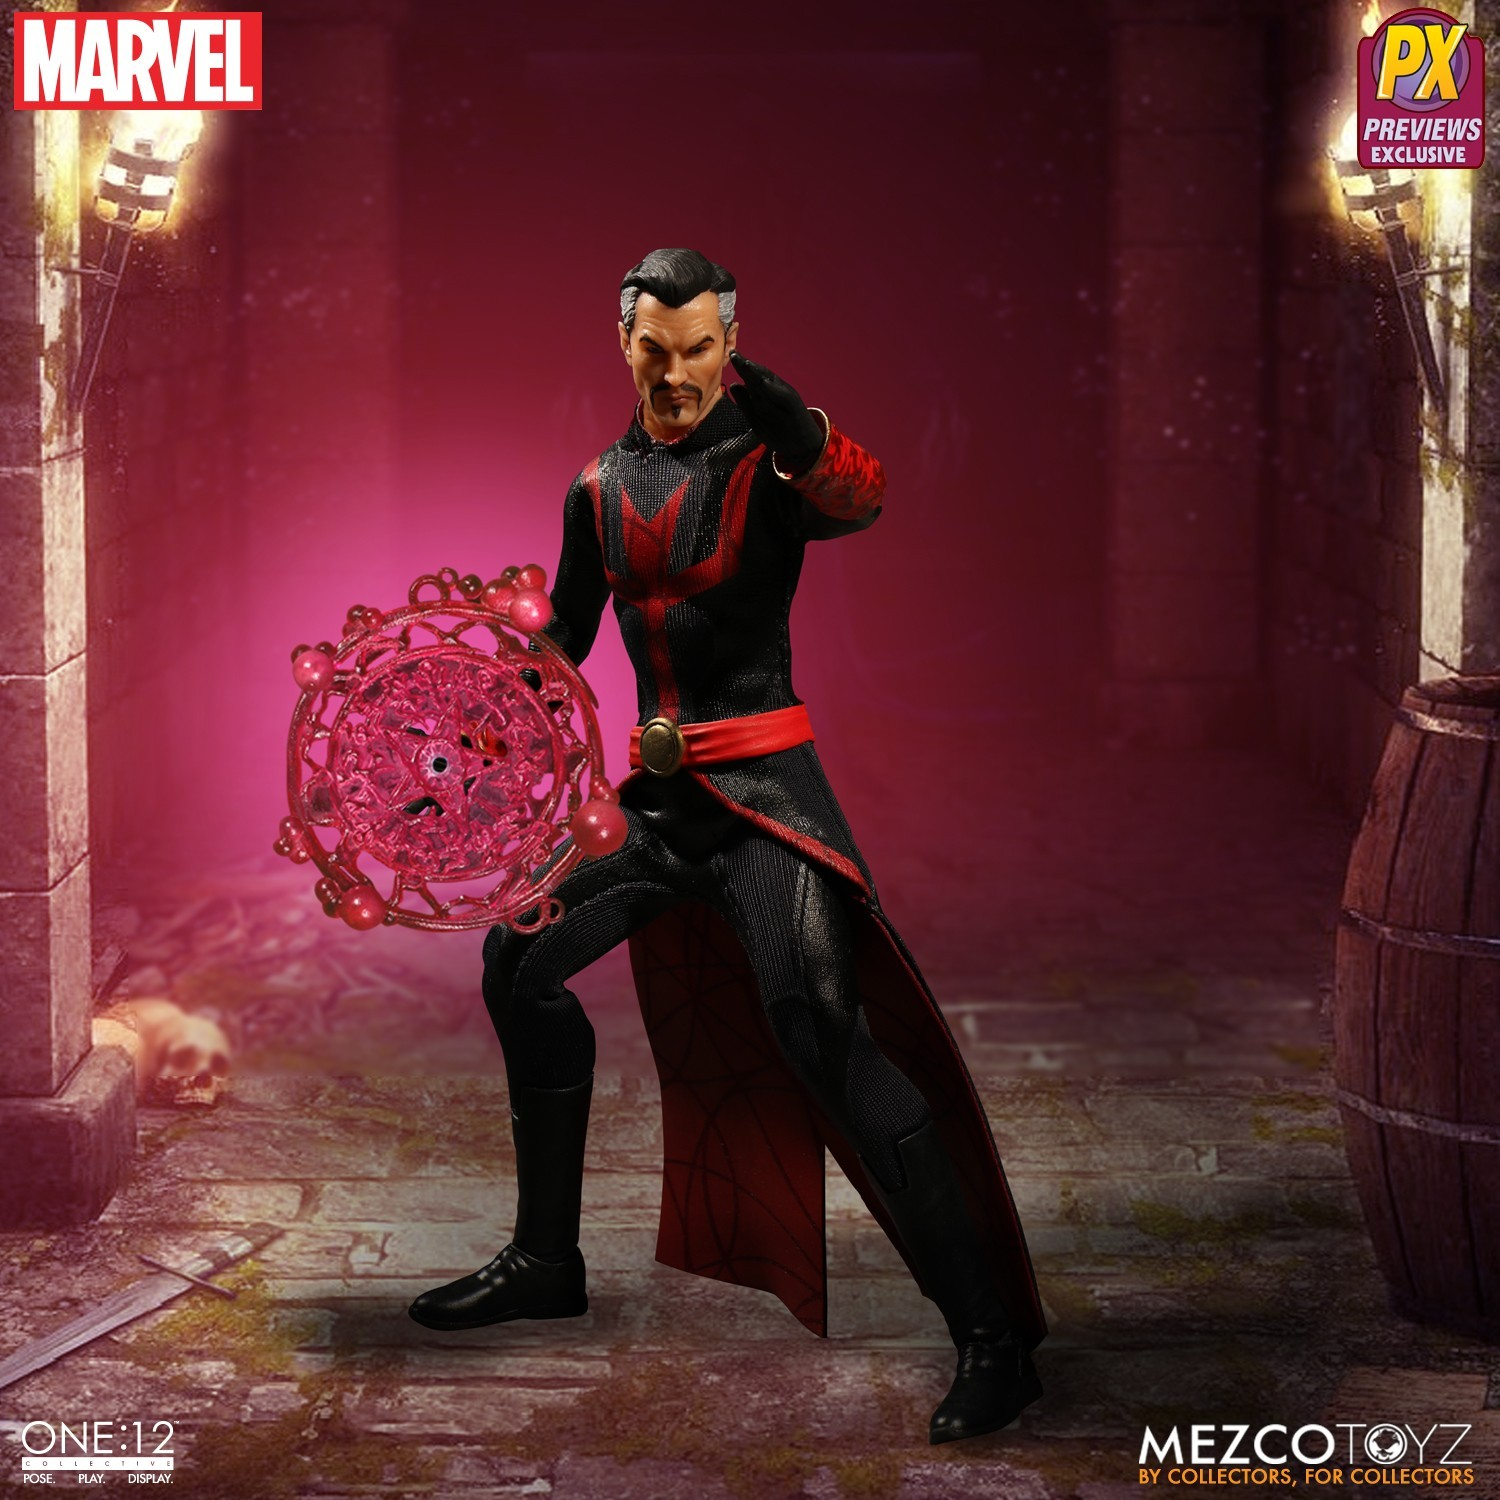 The One 12 Collective Previews Exclusive Marvel Defenders Doctor Strange 3